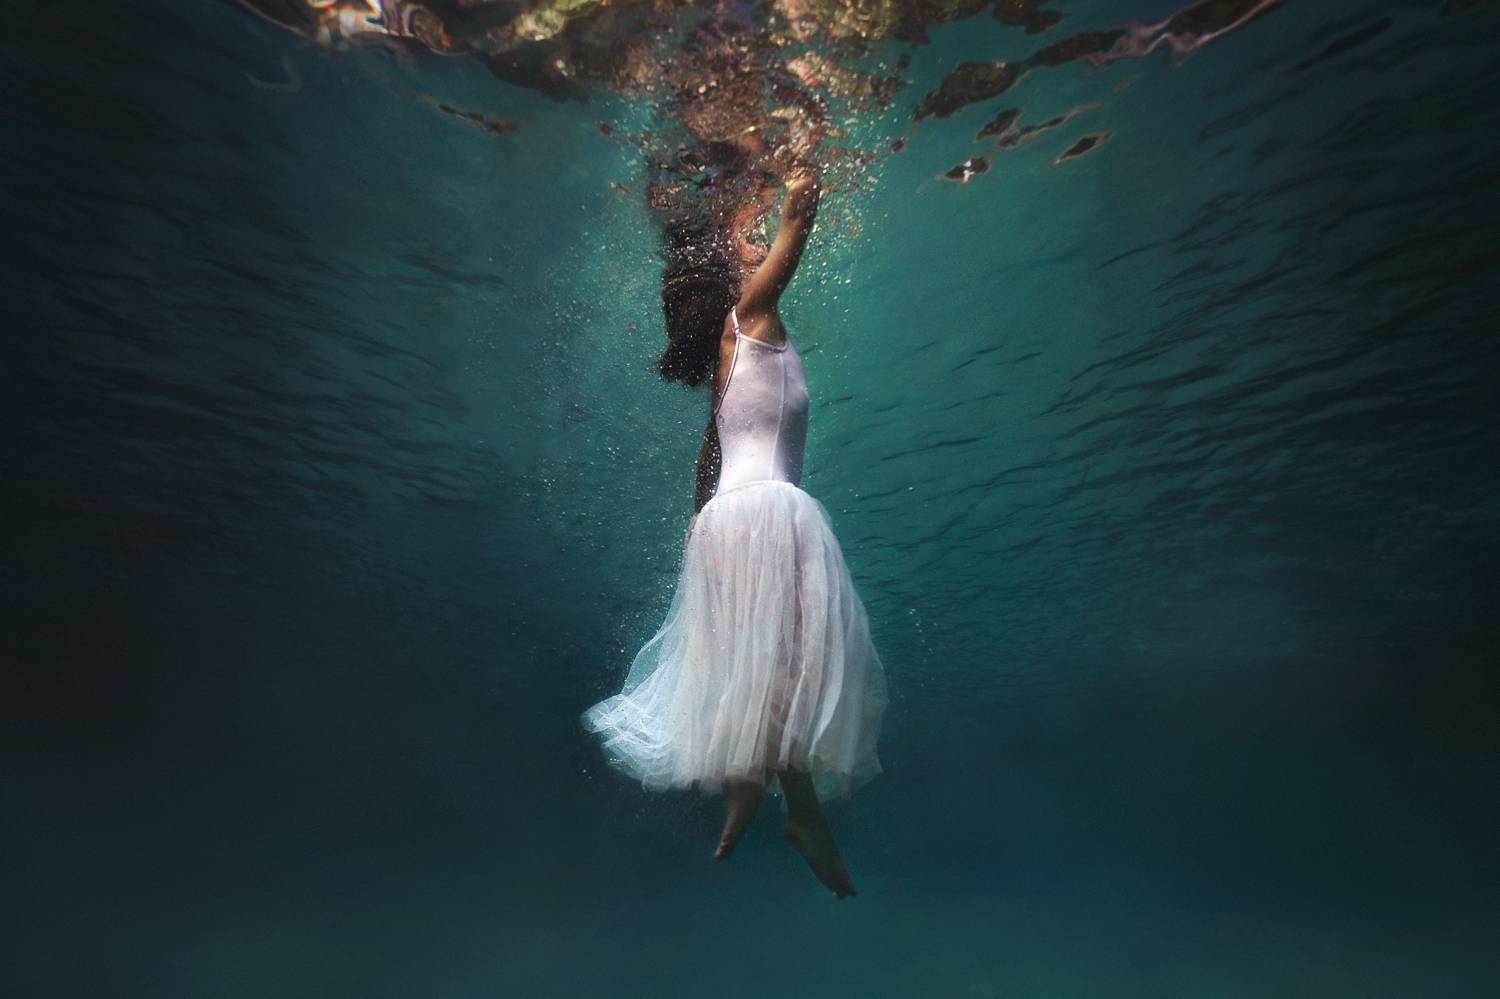 A person in a flowing white dress floats in a blue pool with only their face braking the surface of the water